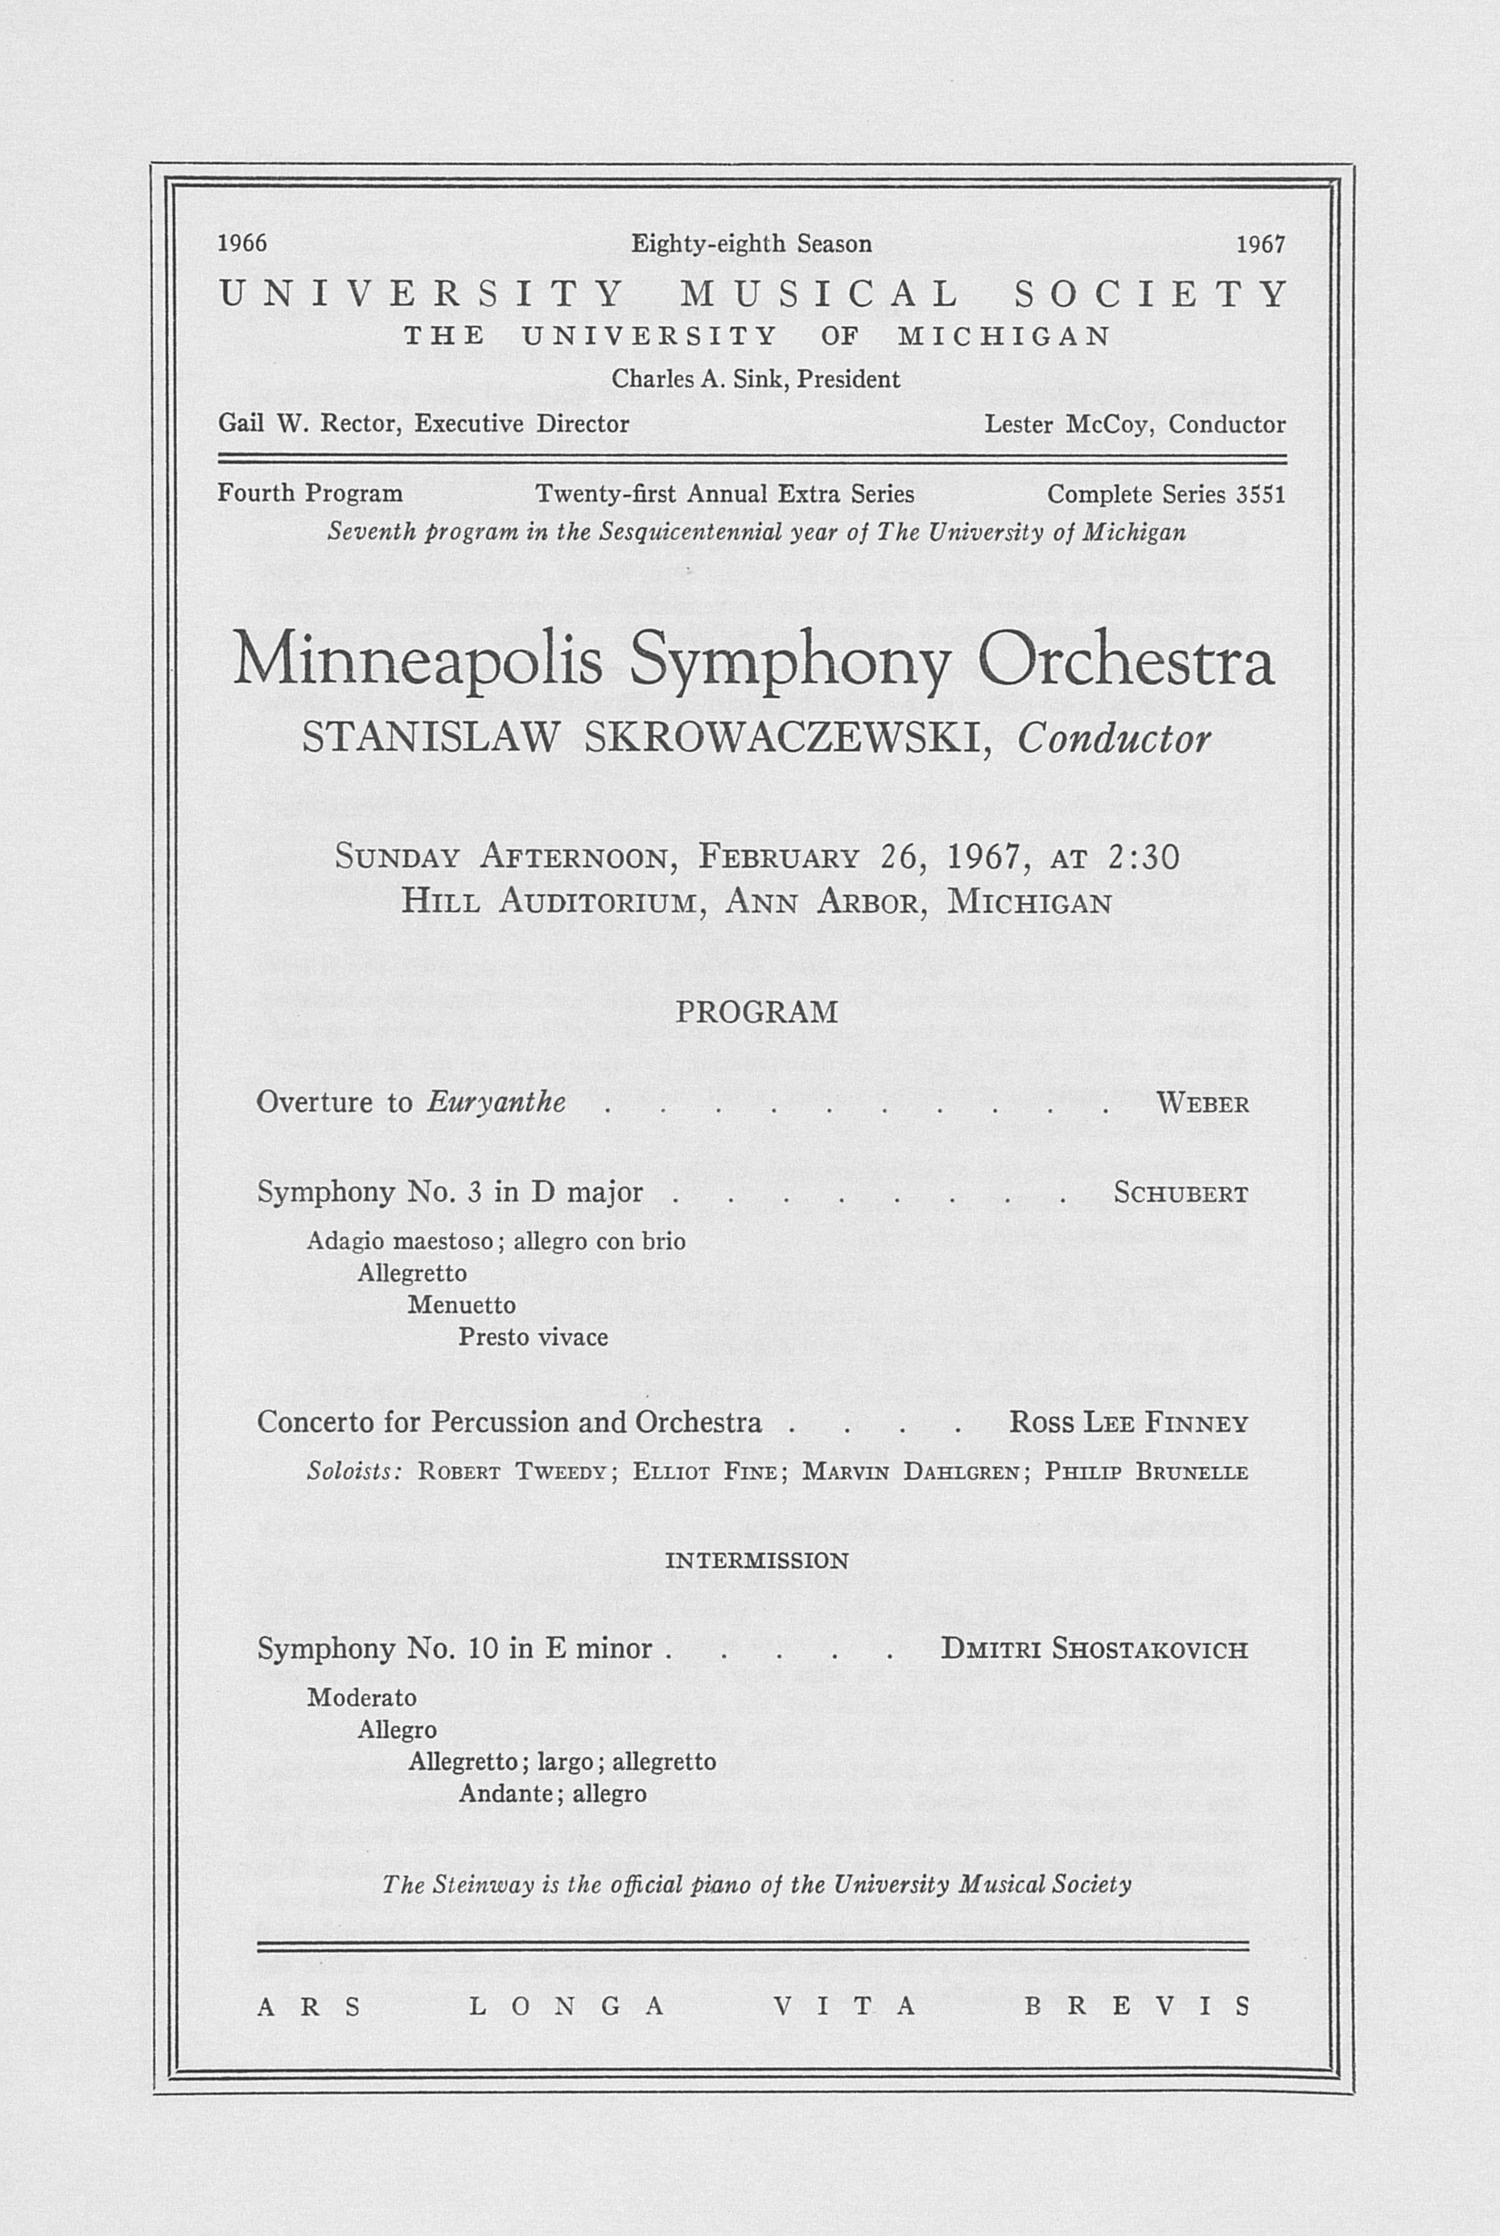 UMS Concert Program, February 26,1967: Minneapolis Symphony Orchestra --  image